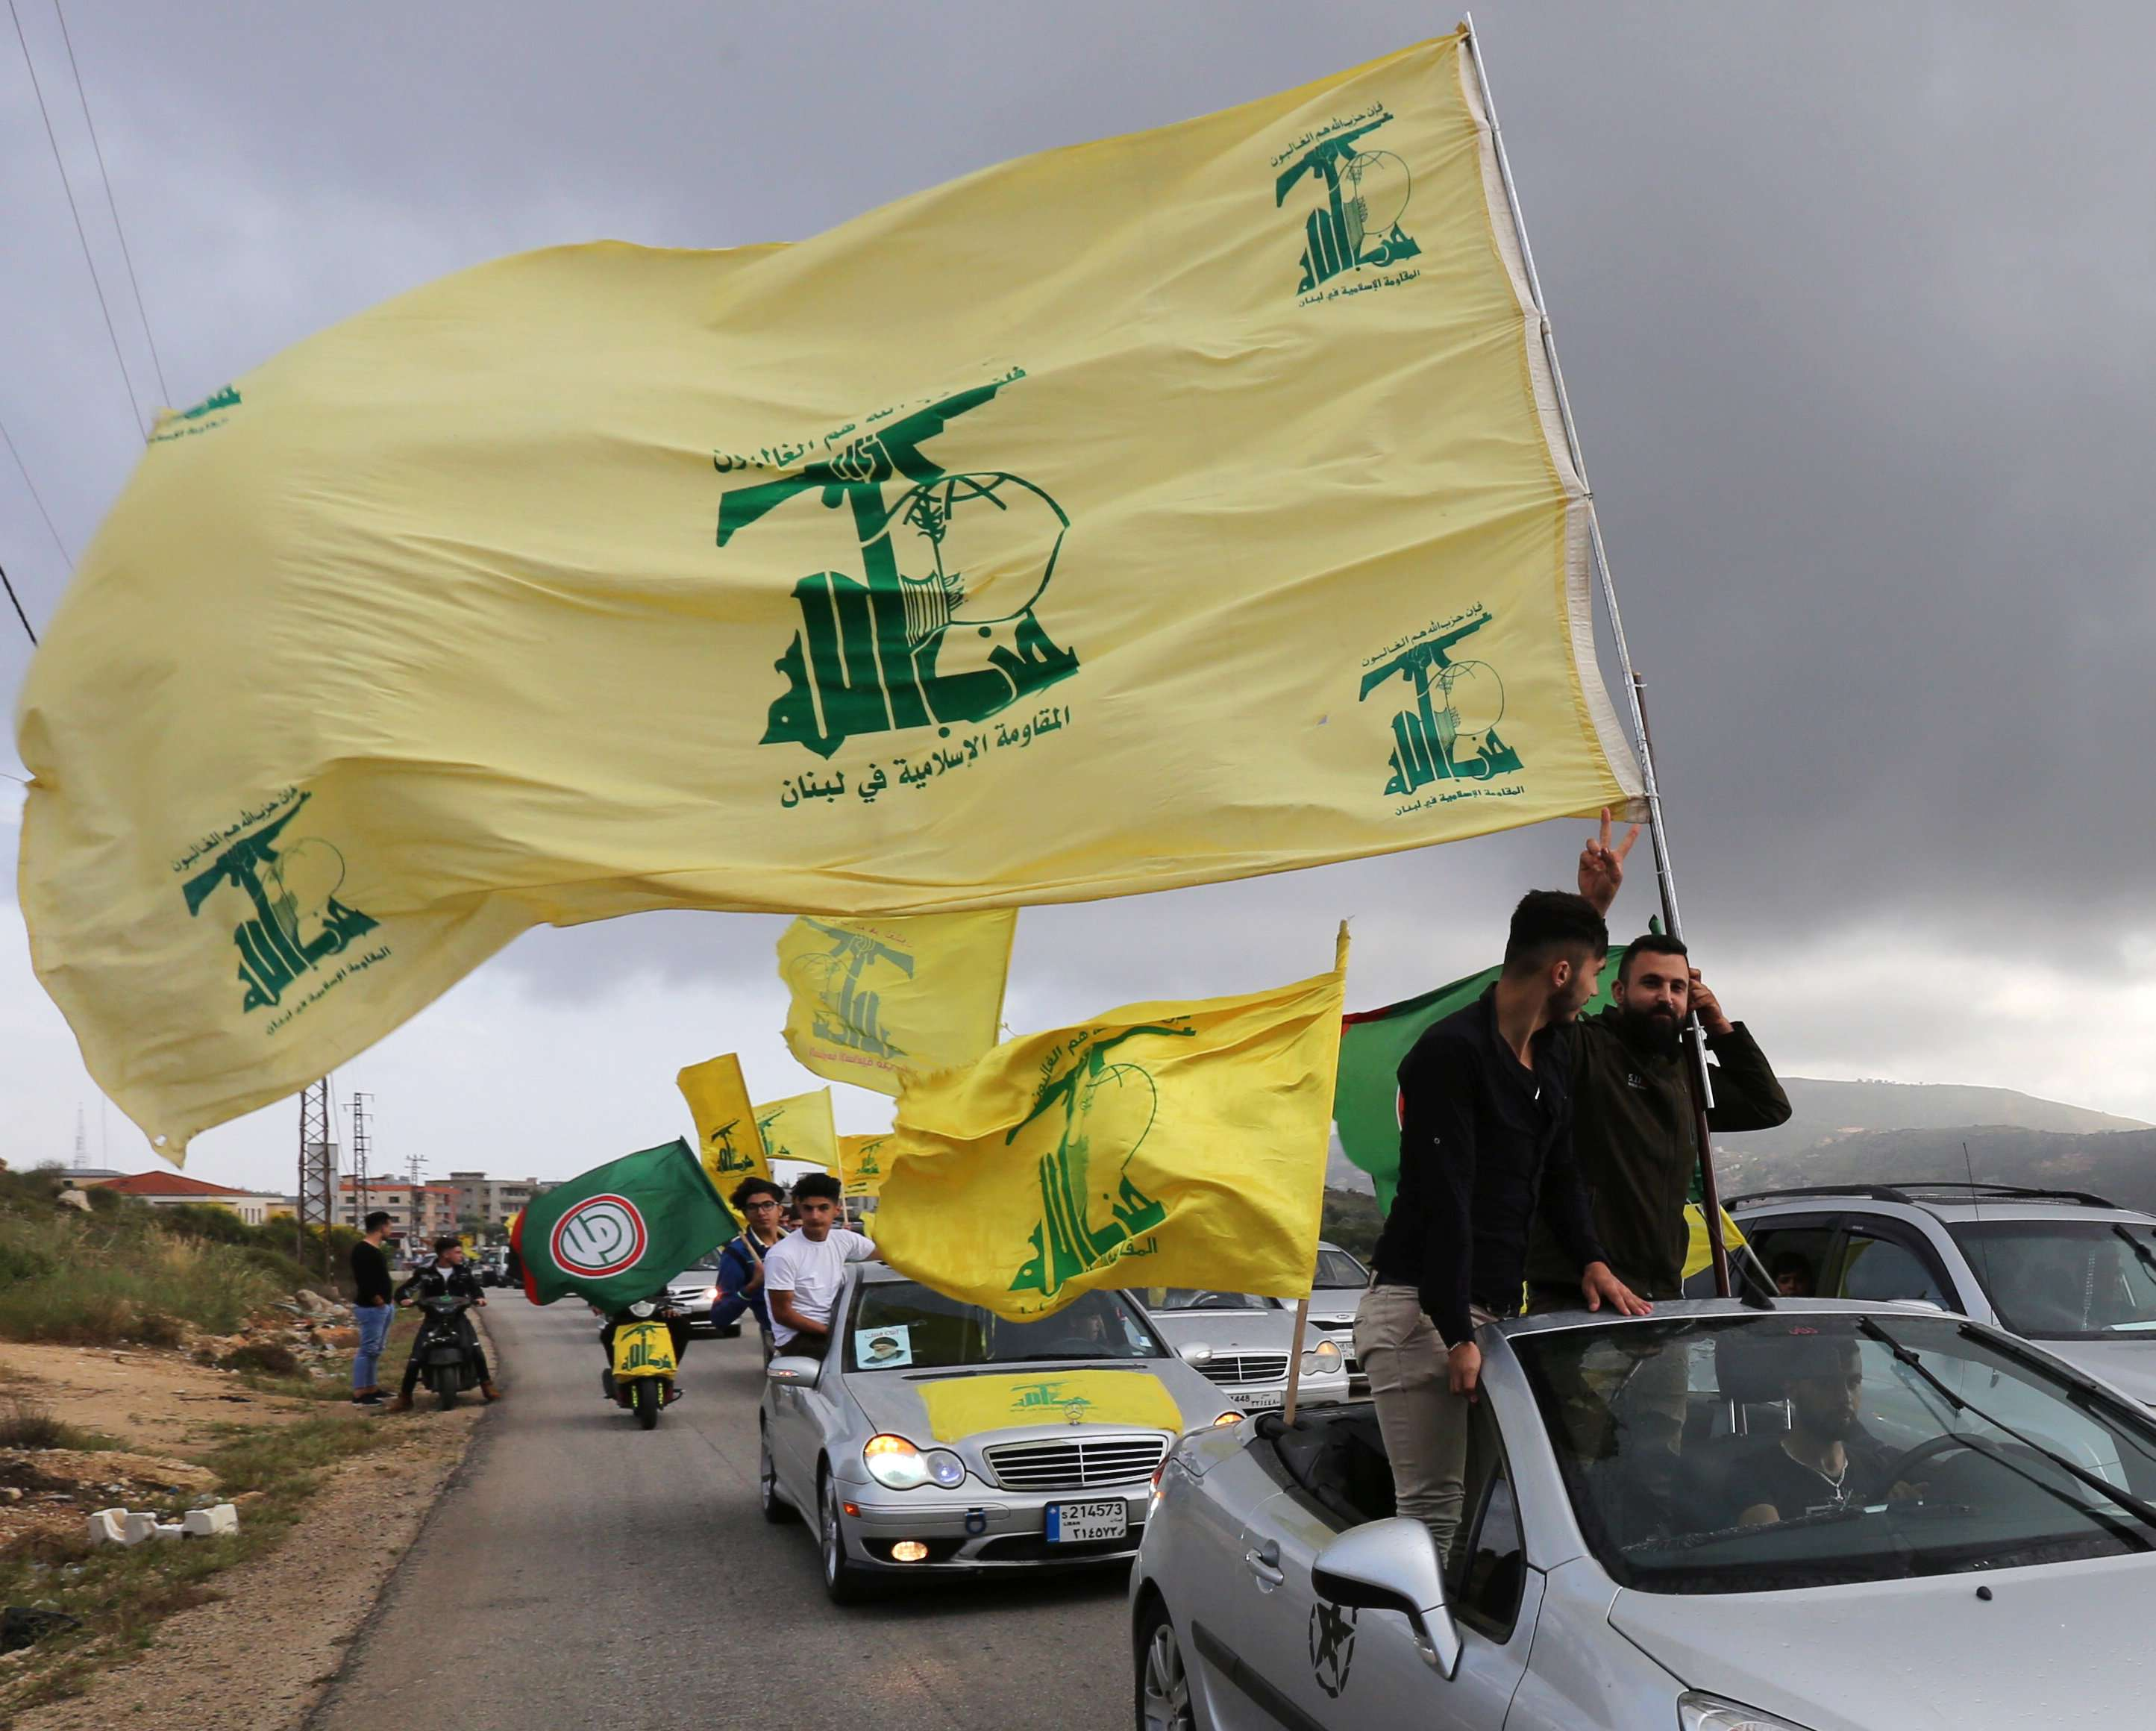 Supporters of Lebanon's Hezbollah gesture as they ride cars and hold Hezbollah flags in Marjayoun, Lebanon May 7. (Reuters)